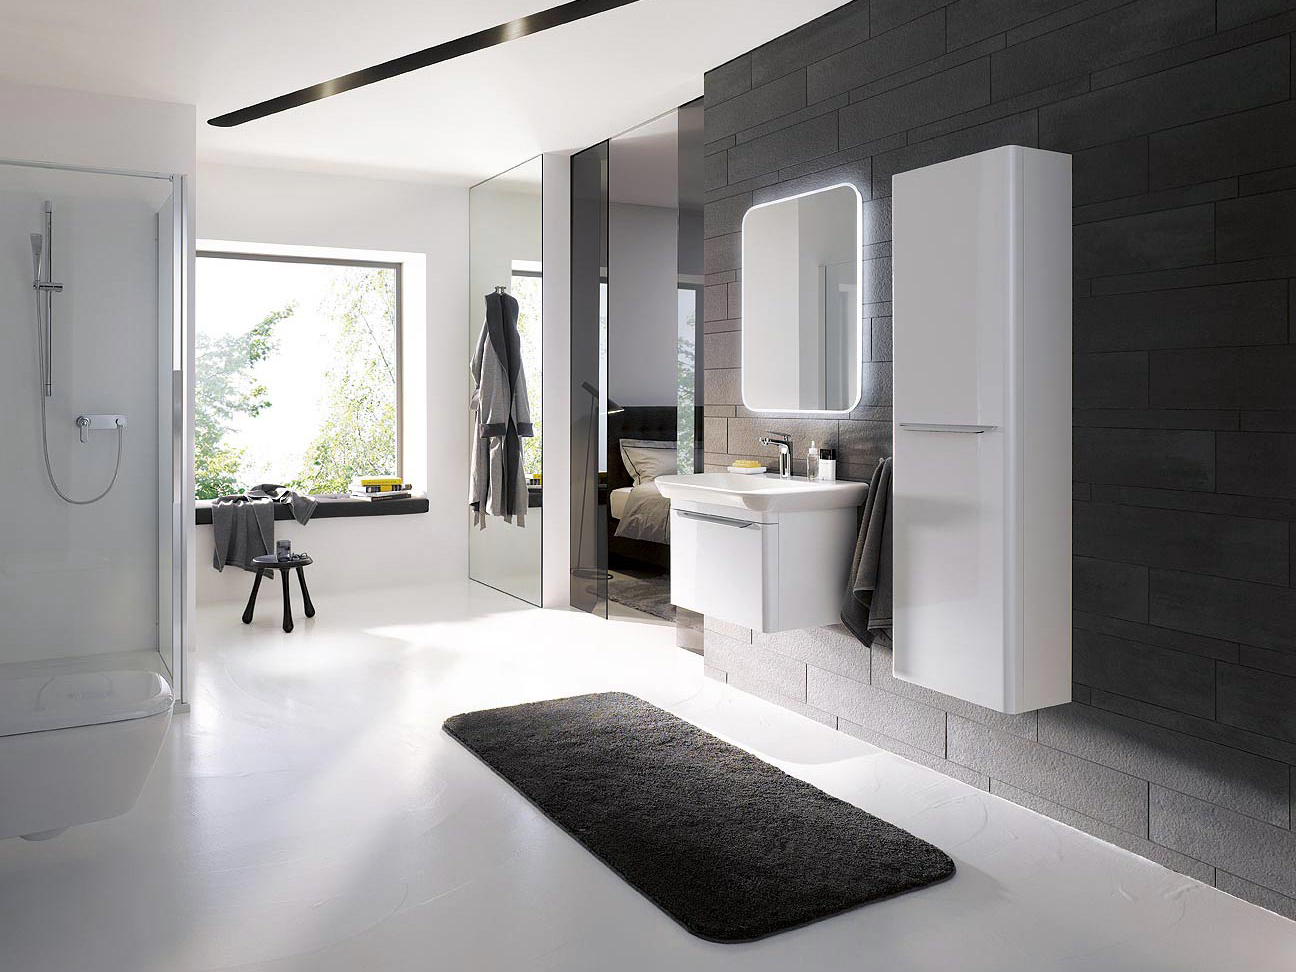 Meuble de salle de bain sobre et design myday de allia for Mobilier salle de bain design contemporain